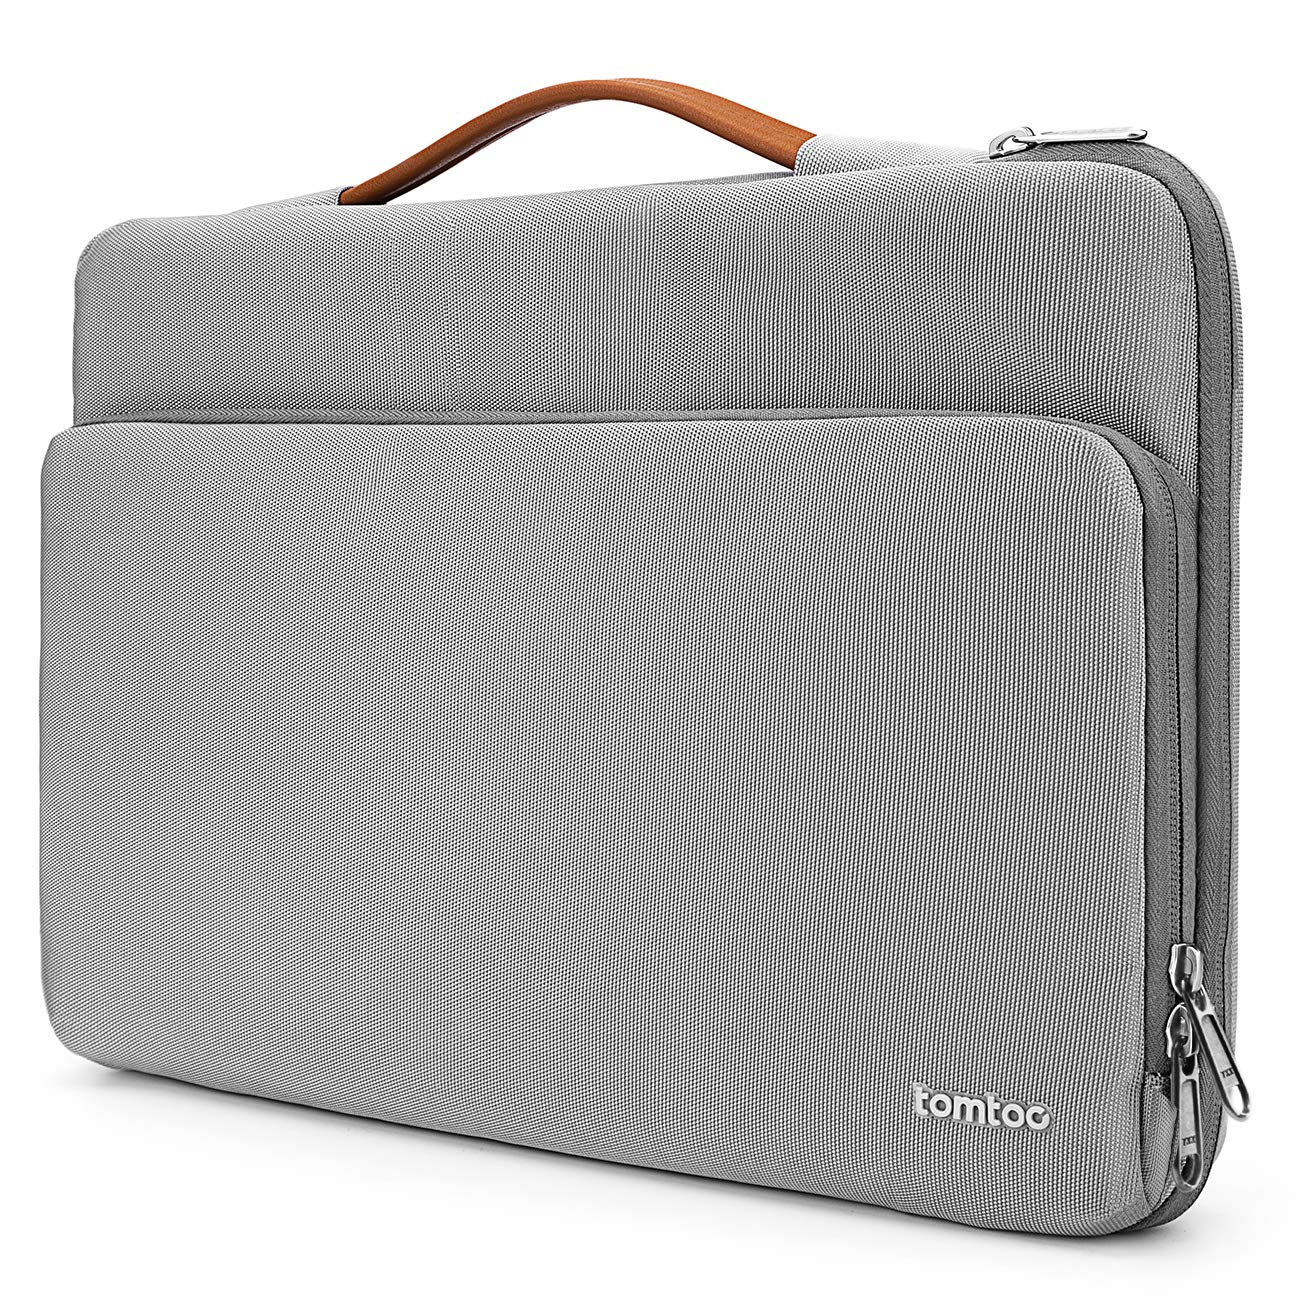 Galleon - Tomtoc 360° Protective Laptop Carrying Case For